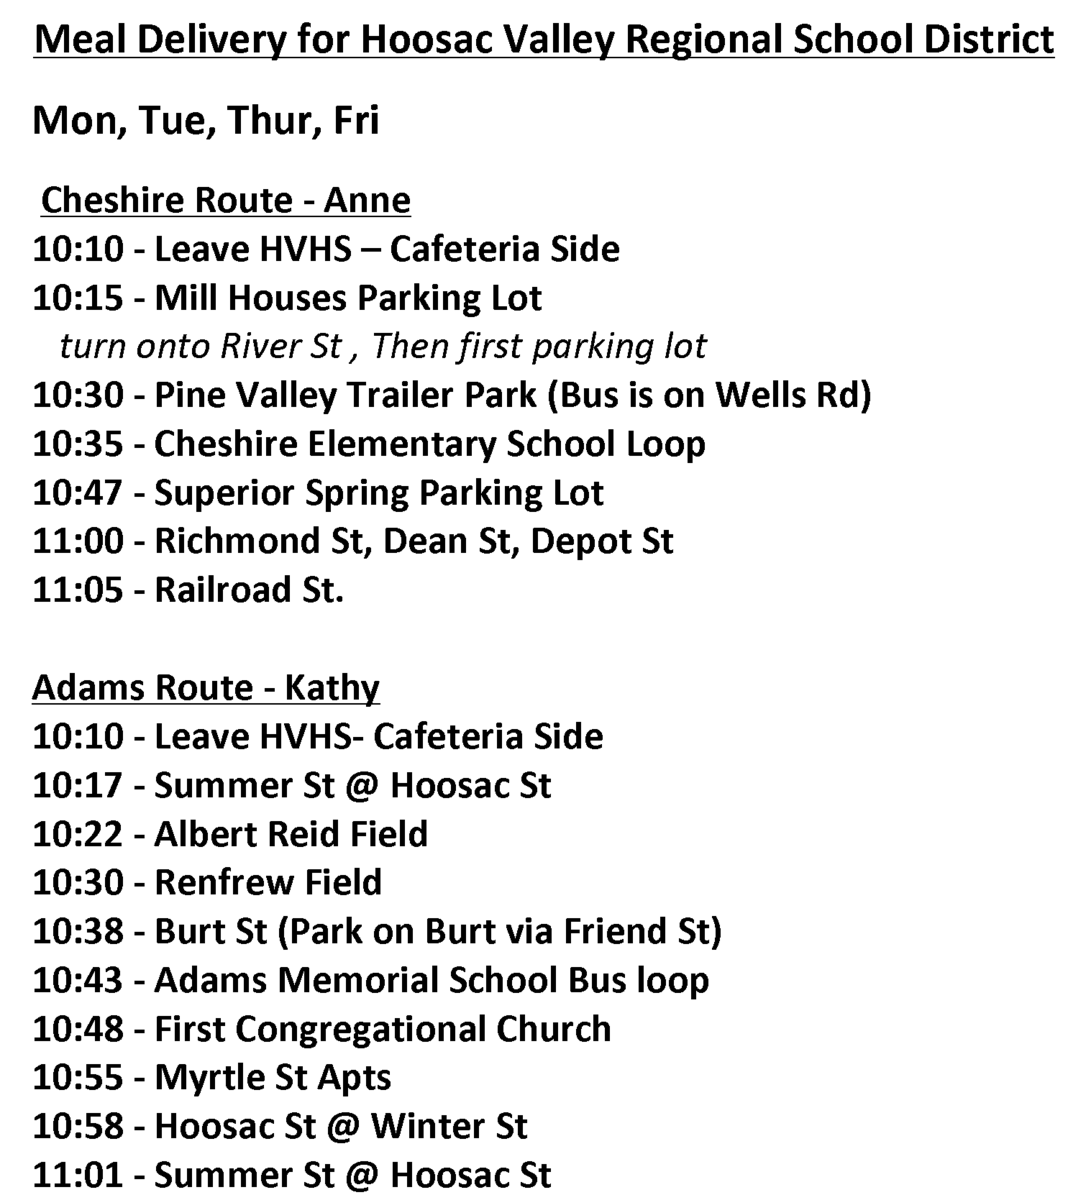 The photo is of bus routes Hoosac Valley School uses to deliver lunch to students around the town -- for more information contact rschutz@hoosacvalley.org